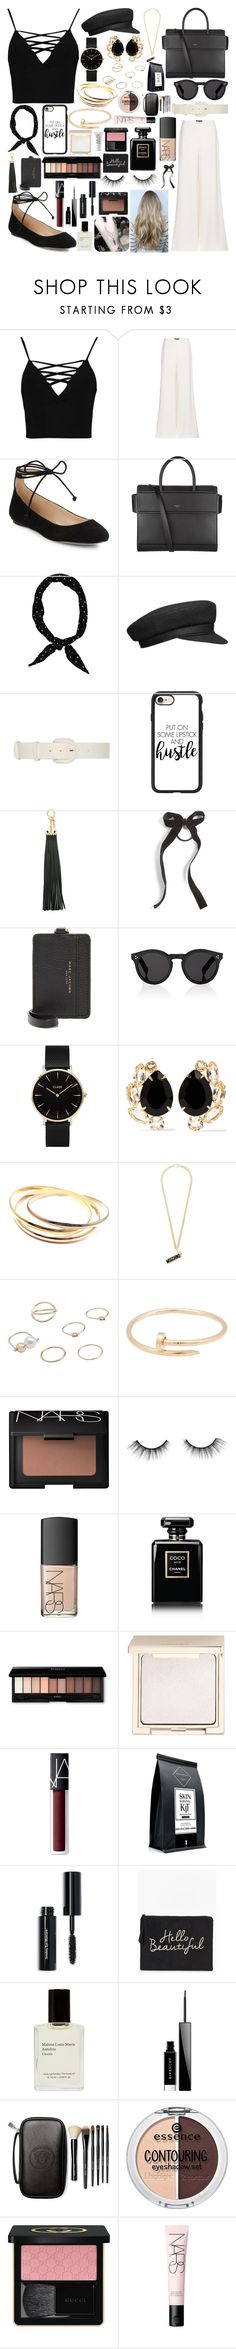 """""""Castle On The Hill"""" by ebz127 ❤ liked on Polyvore featuring Boohoo, Ralph Lauren, Karl Lagerfeld, Givenchy, Ryan Roche, Casetify, Fendi, Cara, Marc Jacobs and Illesteva"""